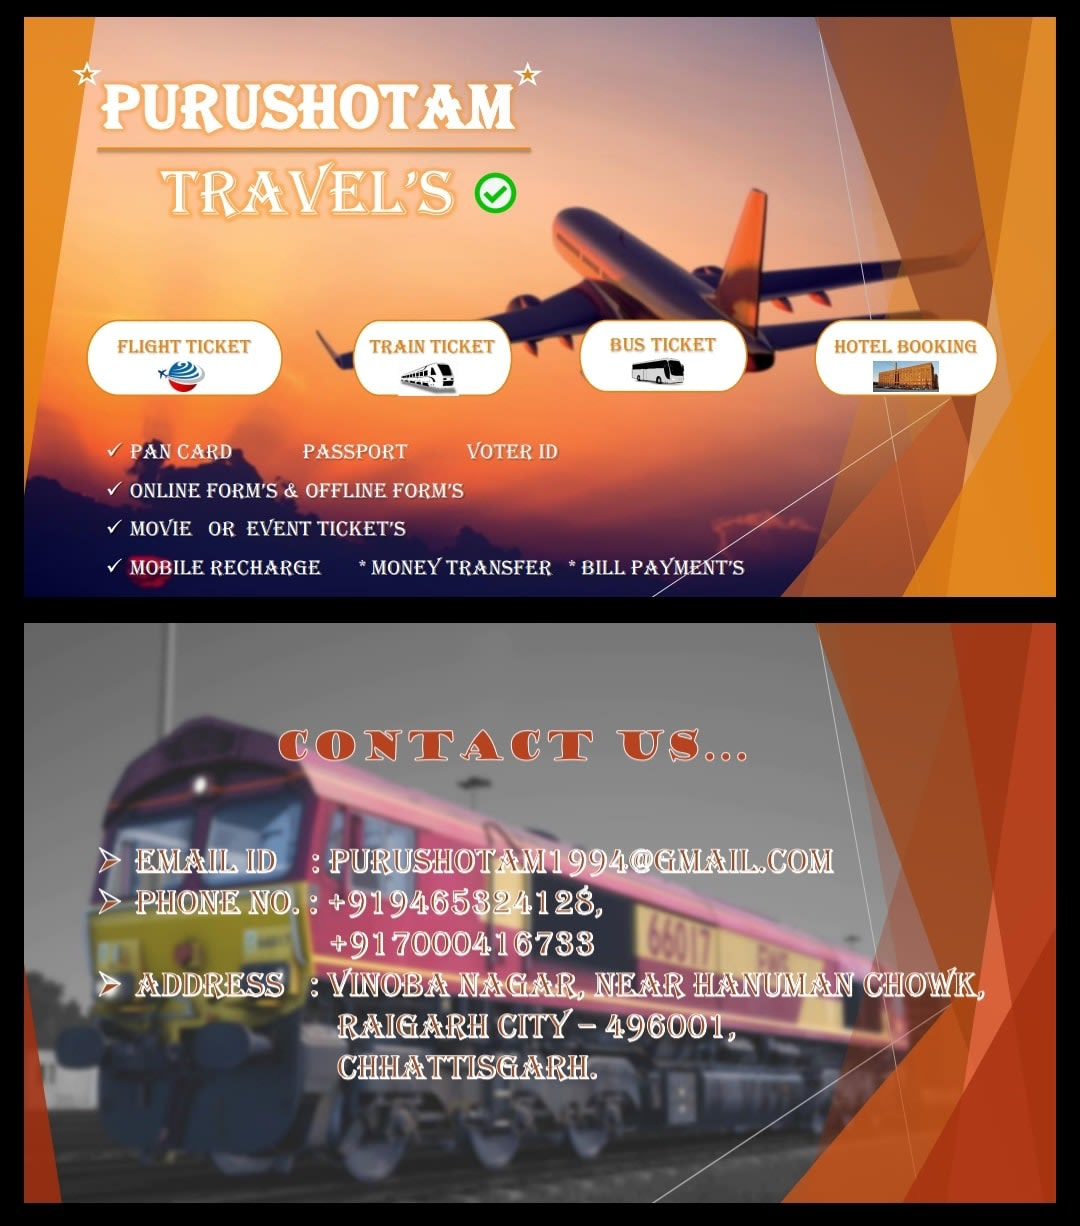 Purushotam Travels and Online Services